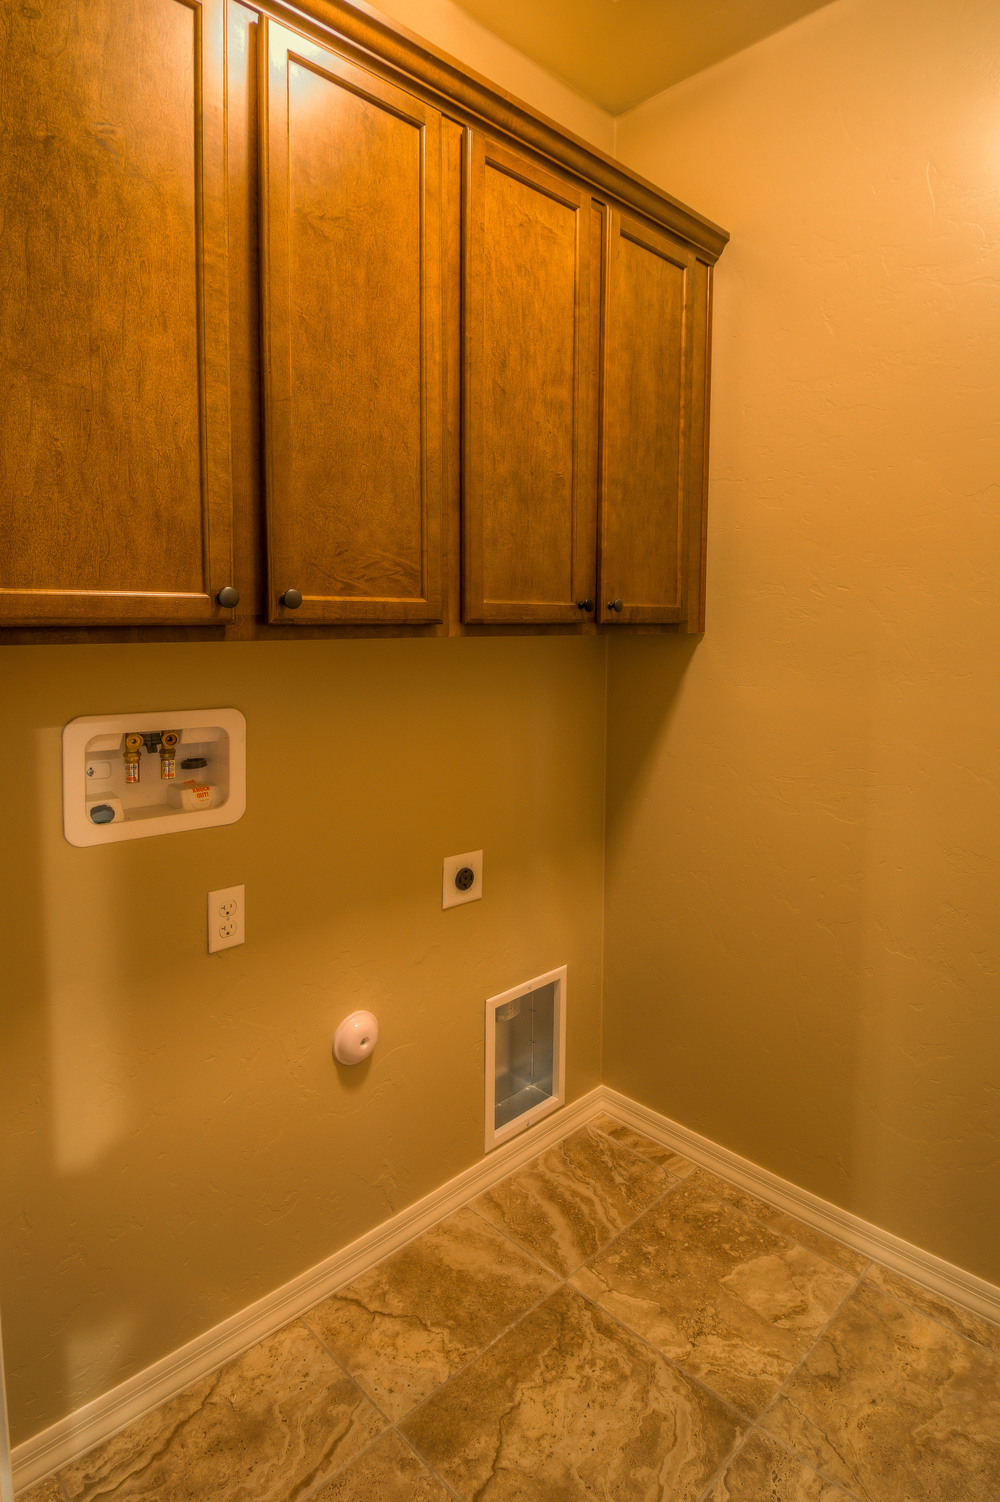 16 Laundry Room photo a.jpg